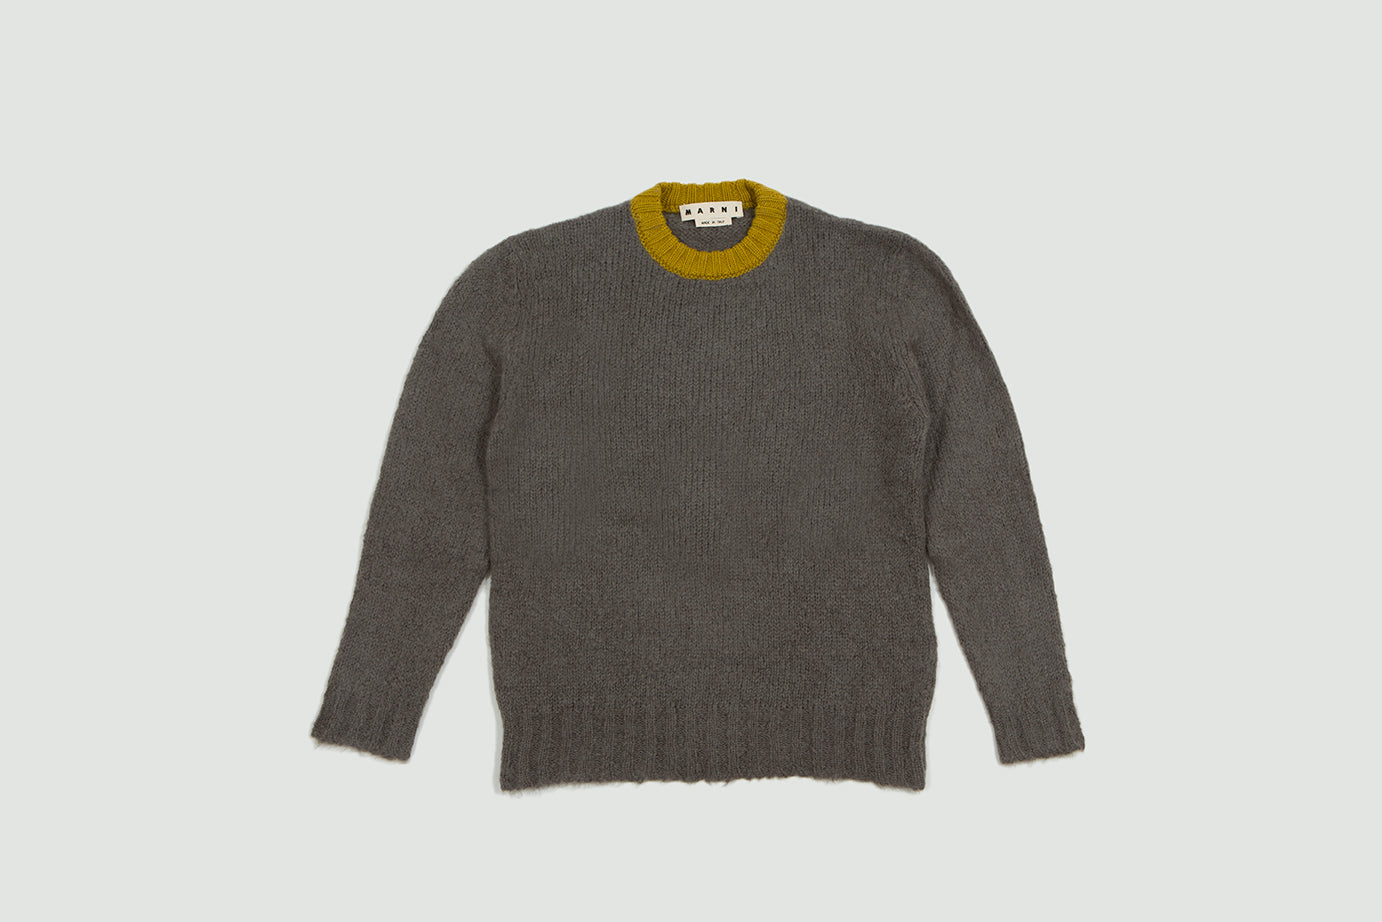 Marni. Crewneck WV sweater grey